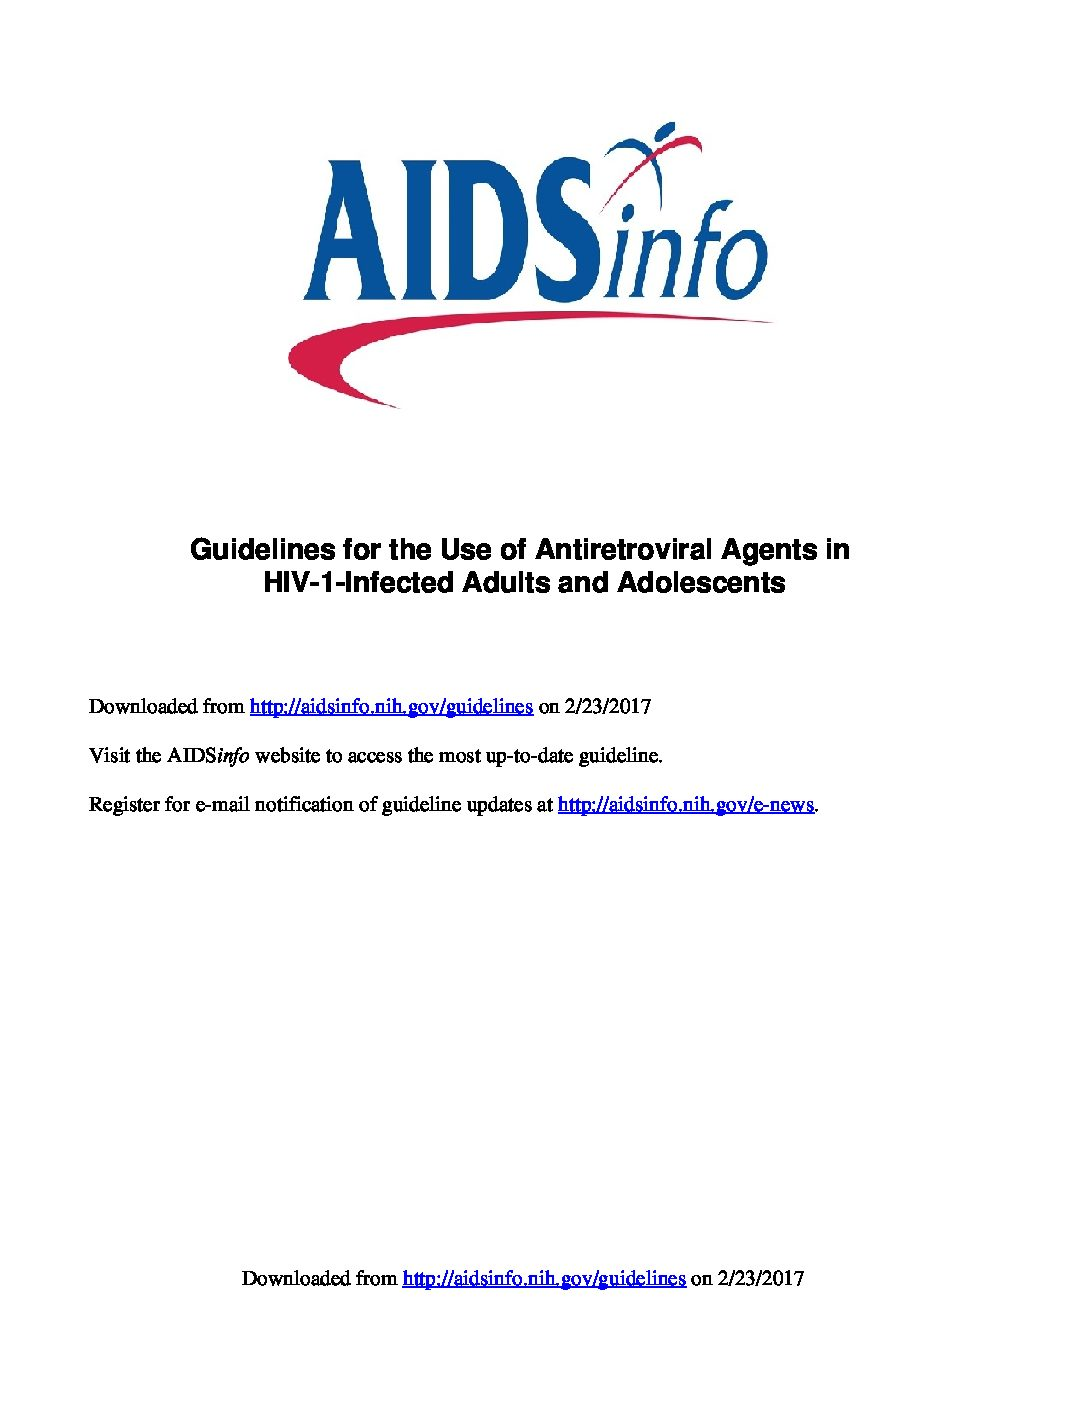 Guidelines for the Use of Antiretroviral Agents in HIV-1-Infected Adults and Adolescents